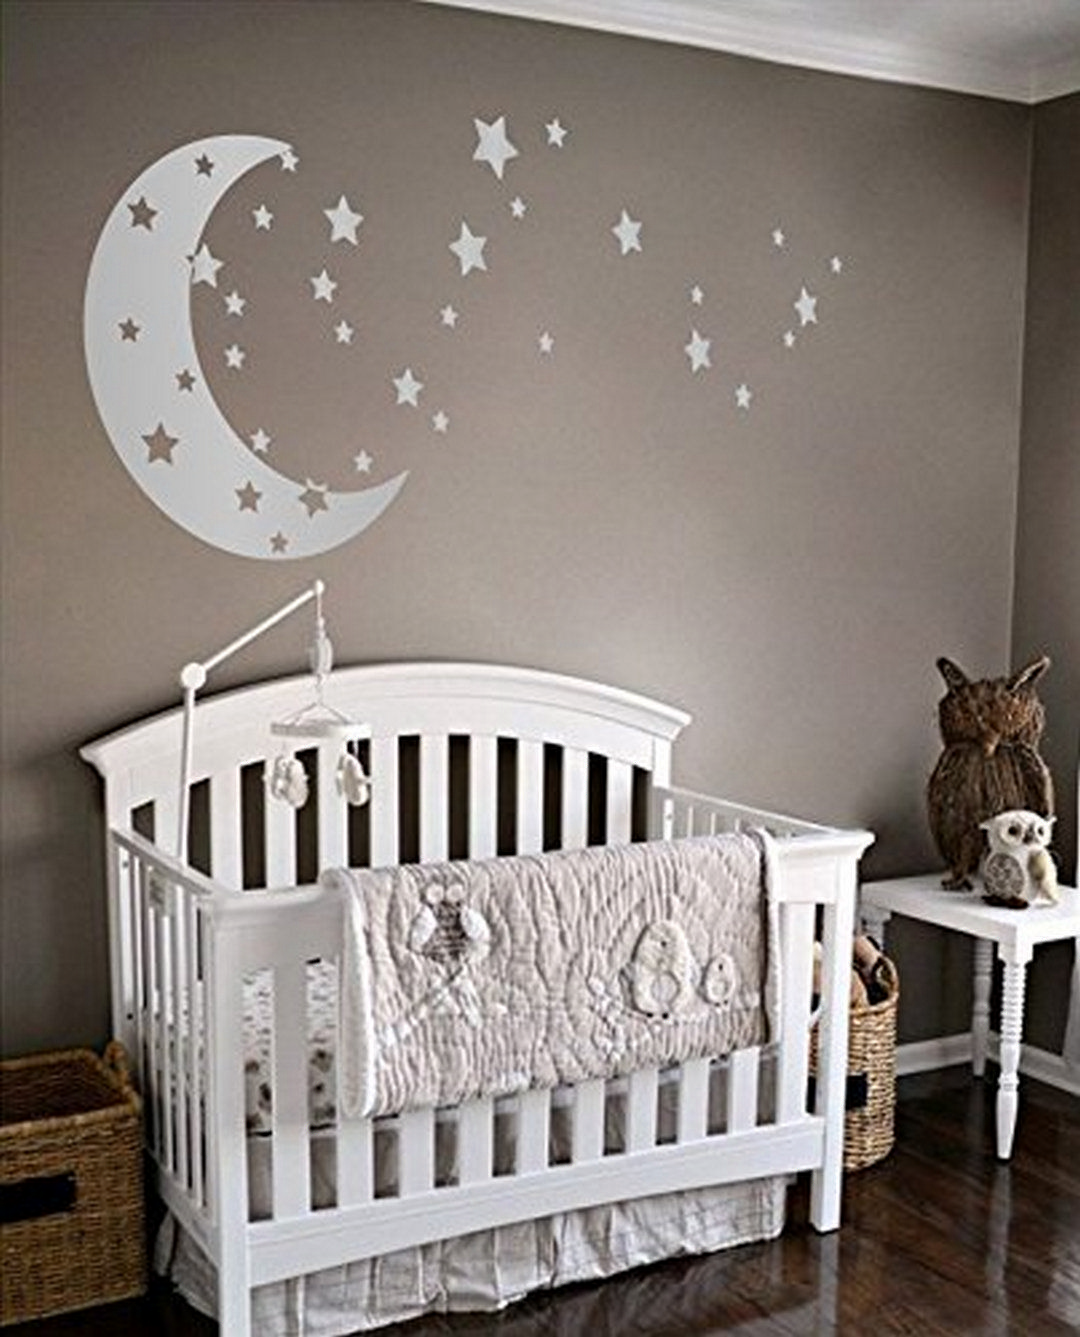 Co Kindergarten And Nursery A Modern Cafe With Child Care Support Baby Boy Room Decor Nursery Baby Room Nursery Room Diy